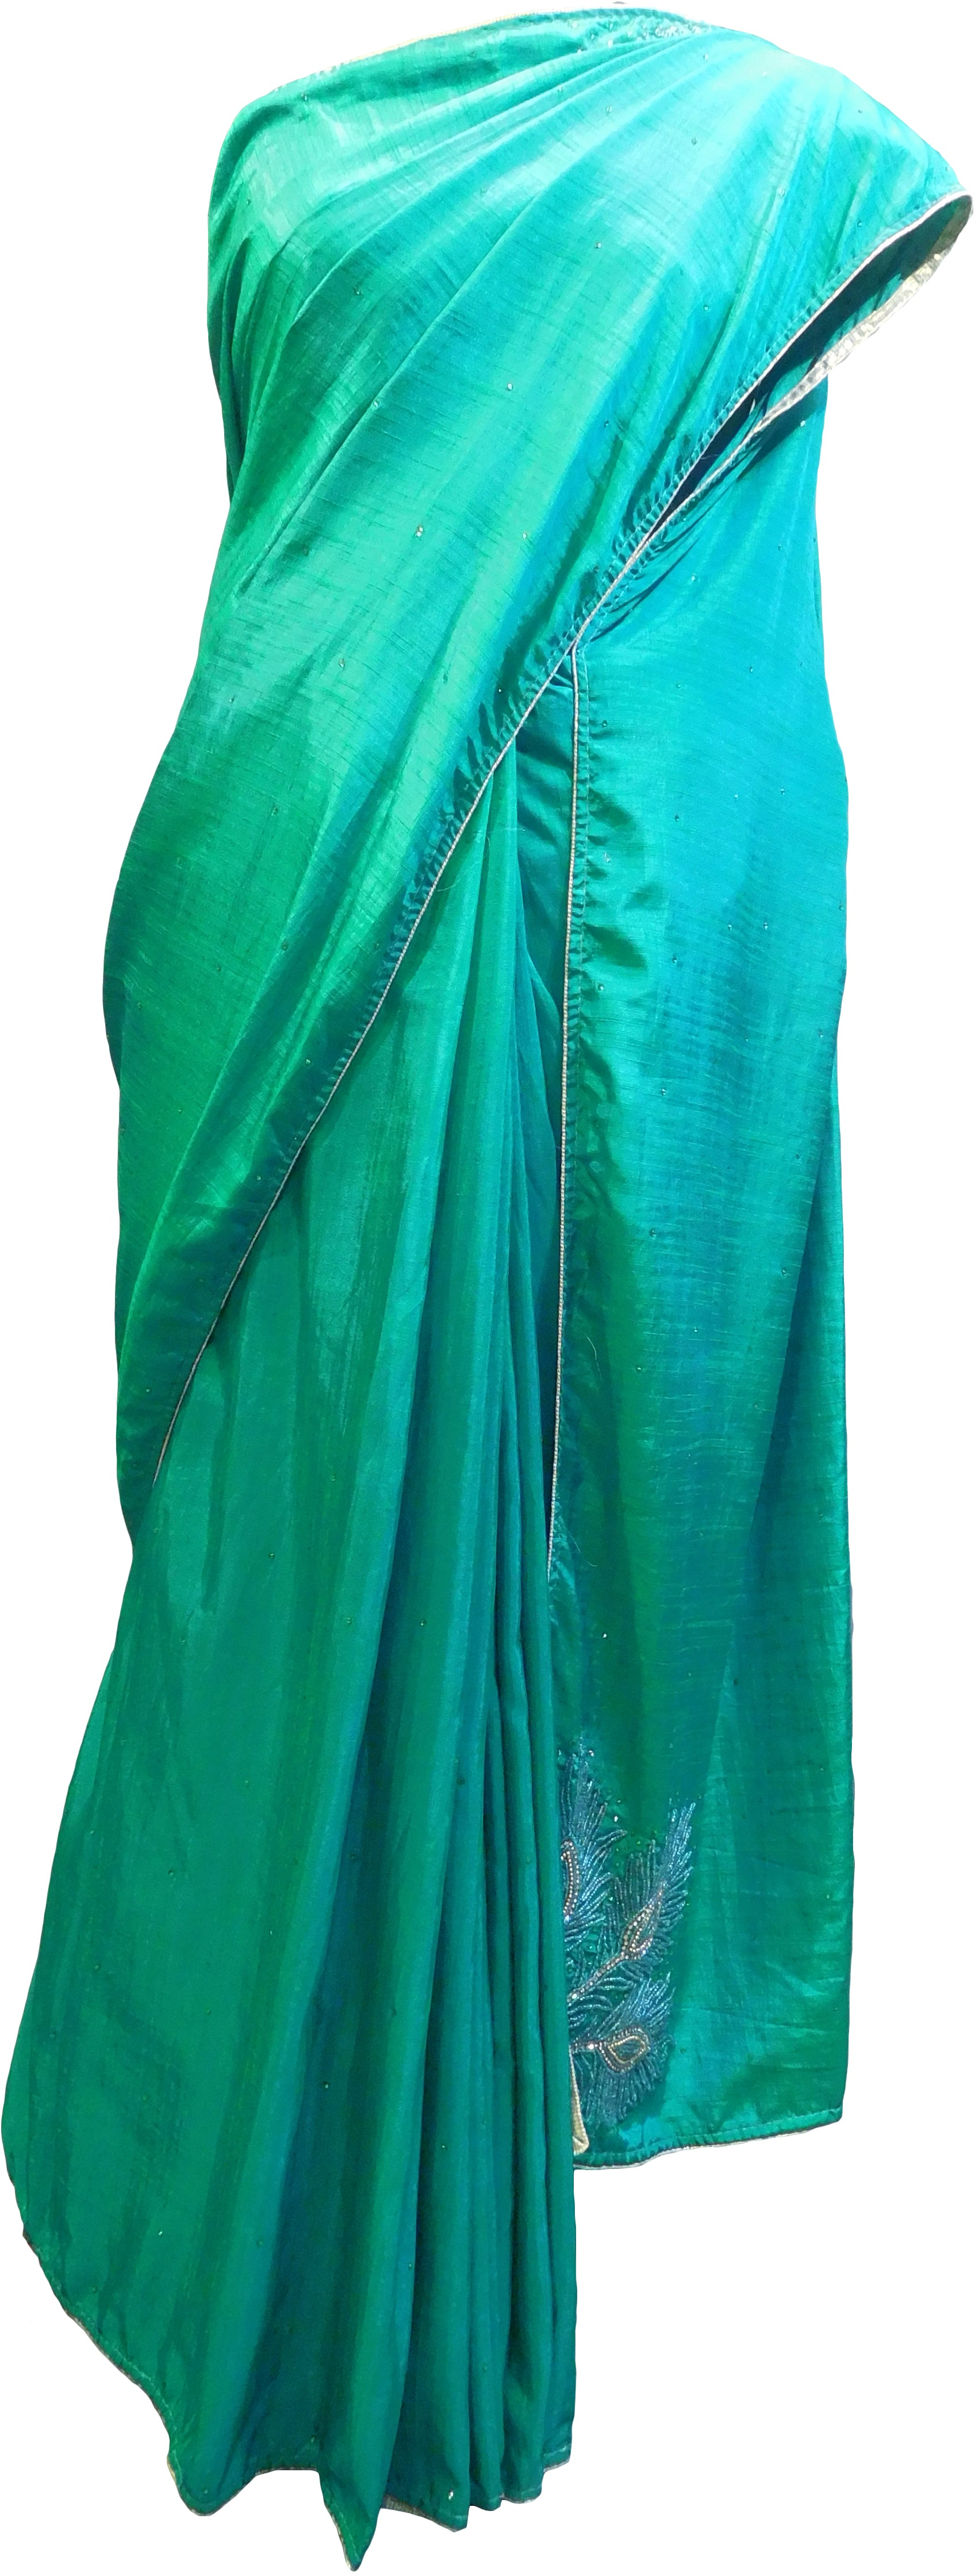 SMSAREE Turquoise Designer Wedding Partywear Silk Cutdana Bullion Beads & Stone Hand Embroidery Work Bridal Saree Sari With Blouse Piece E969